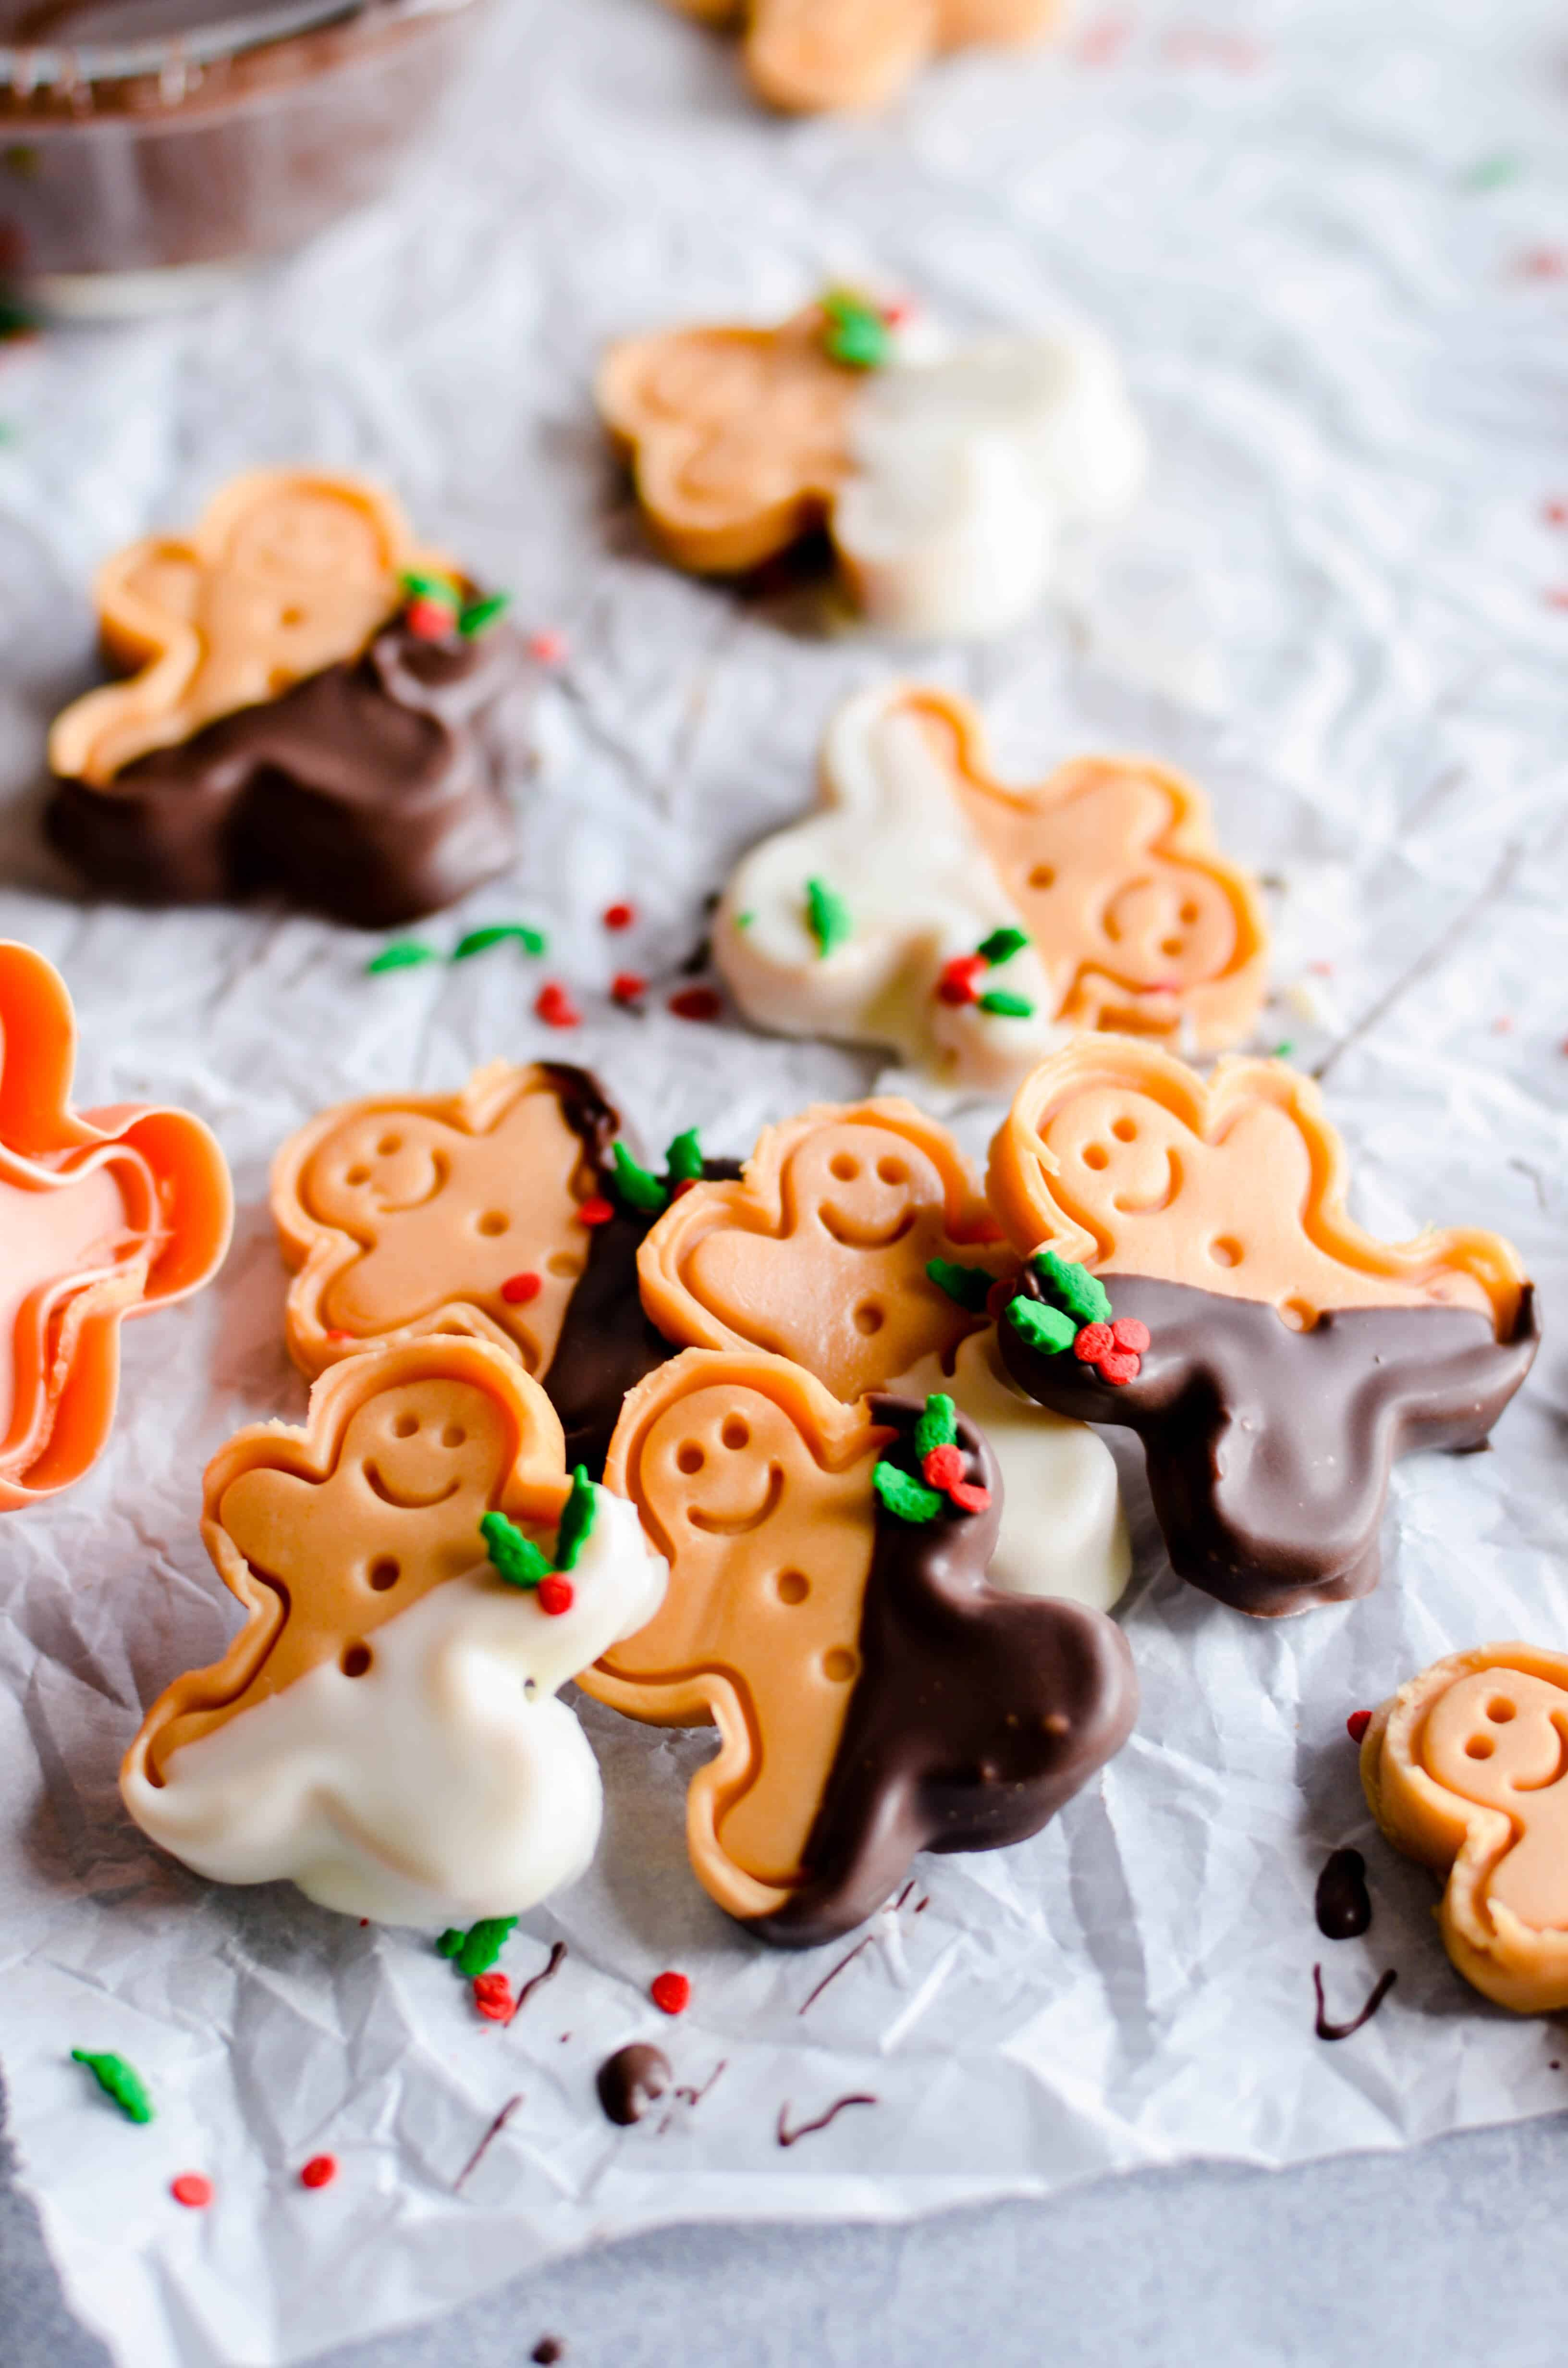 This yummy gingerbread fudge is the perfect treat for Christmas! No candy thermometer or special equipment needed.